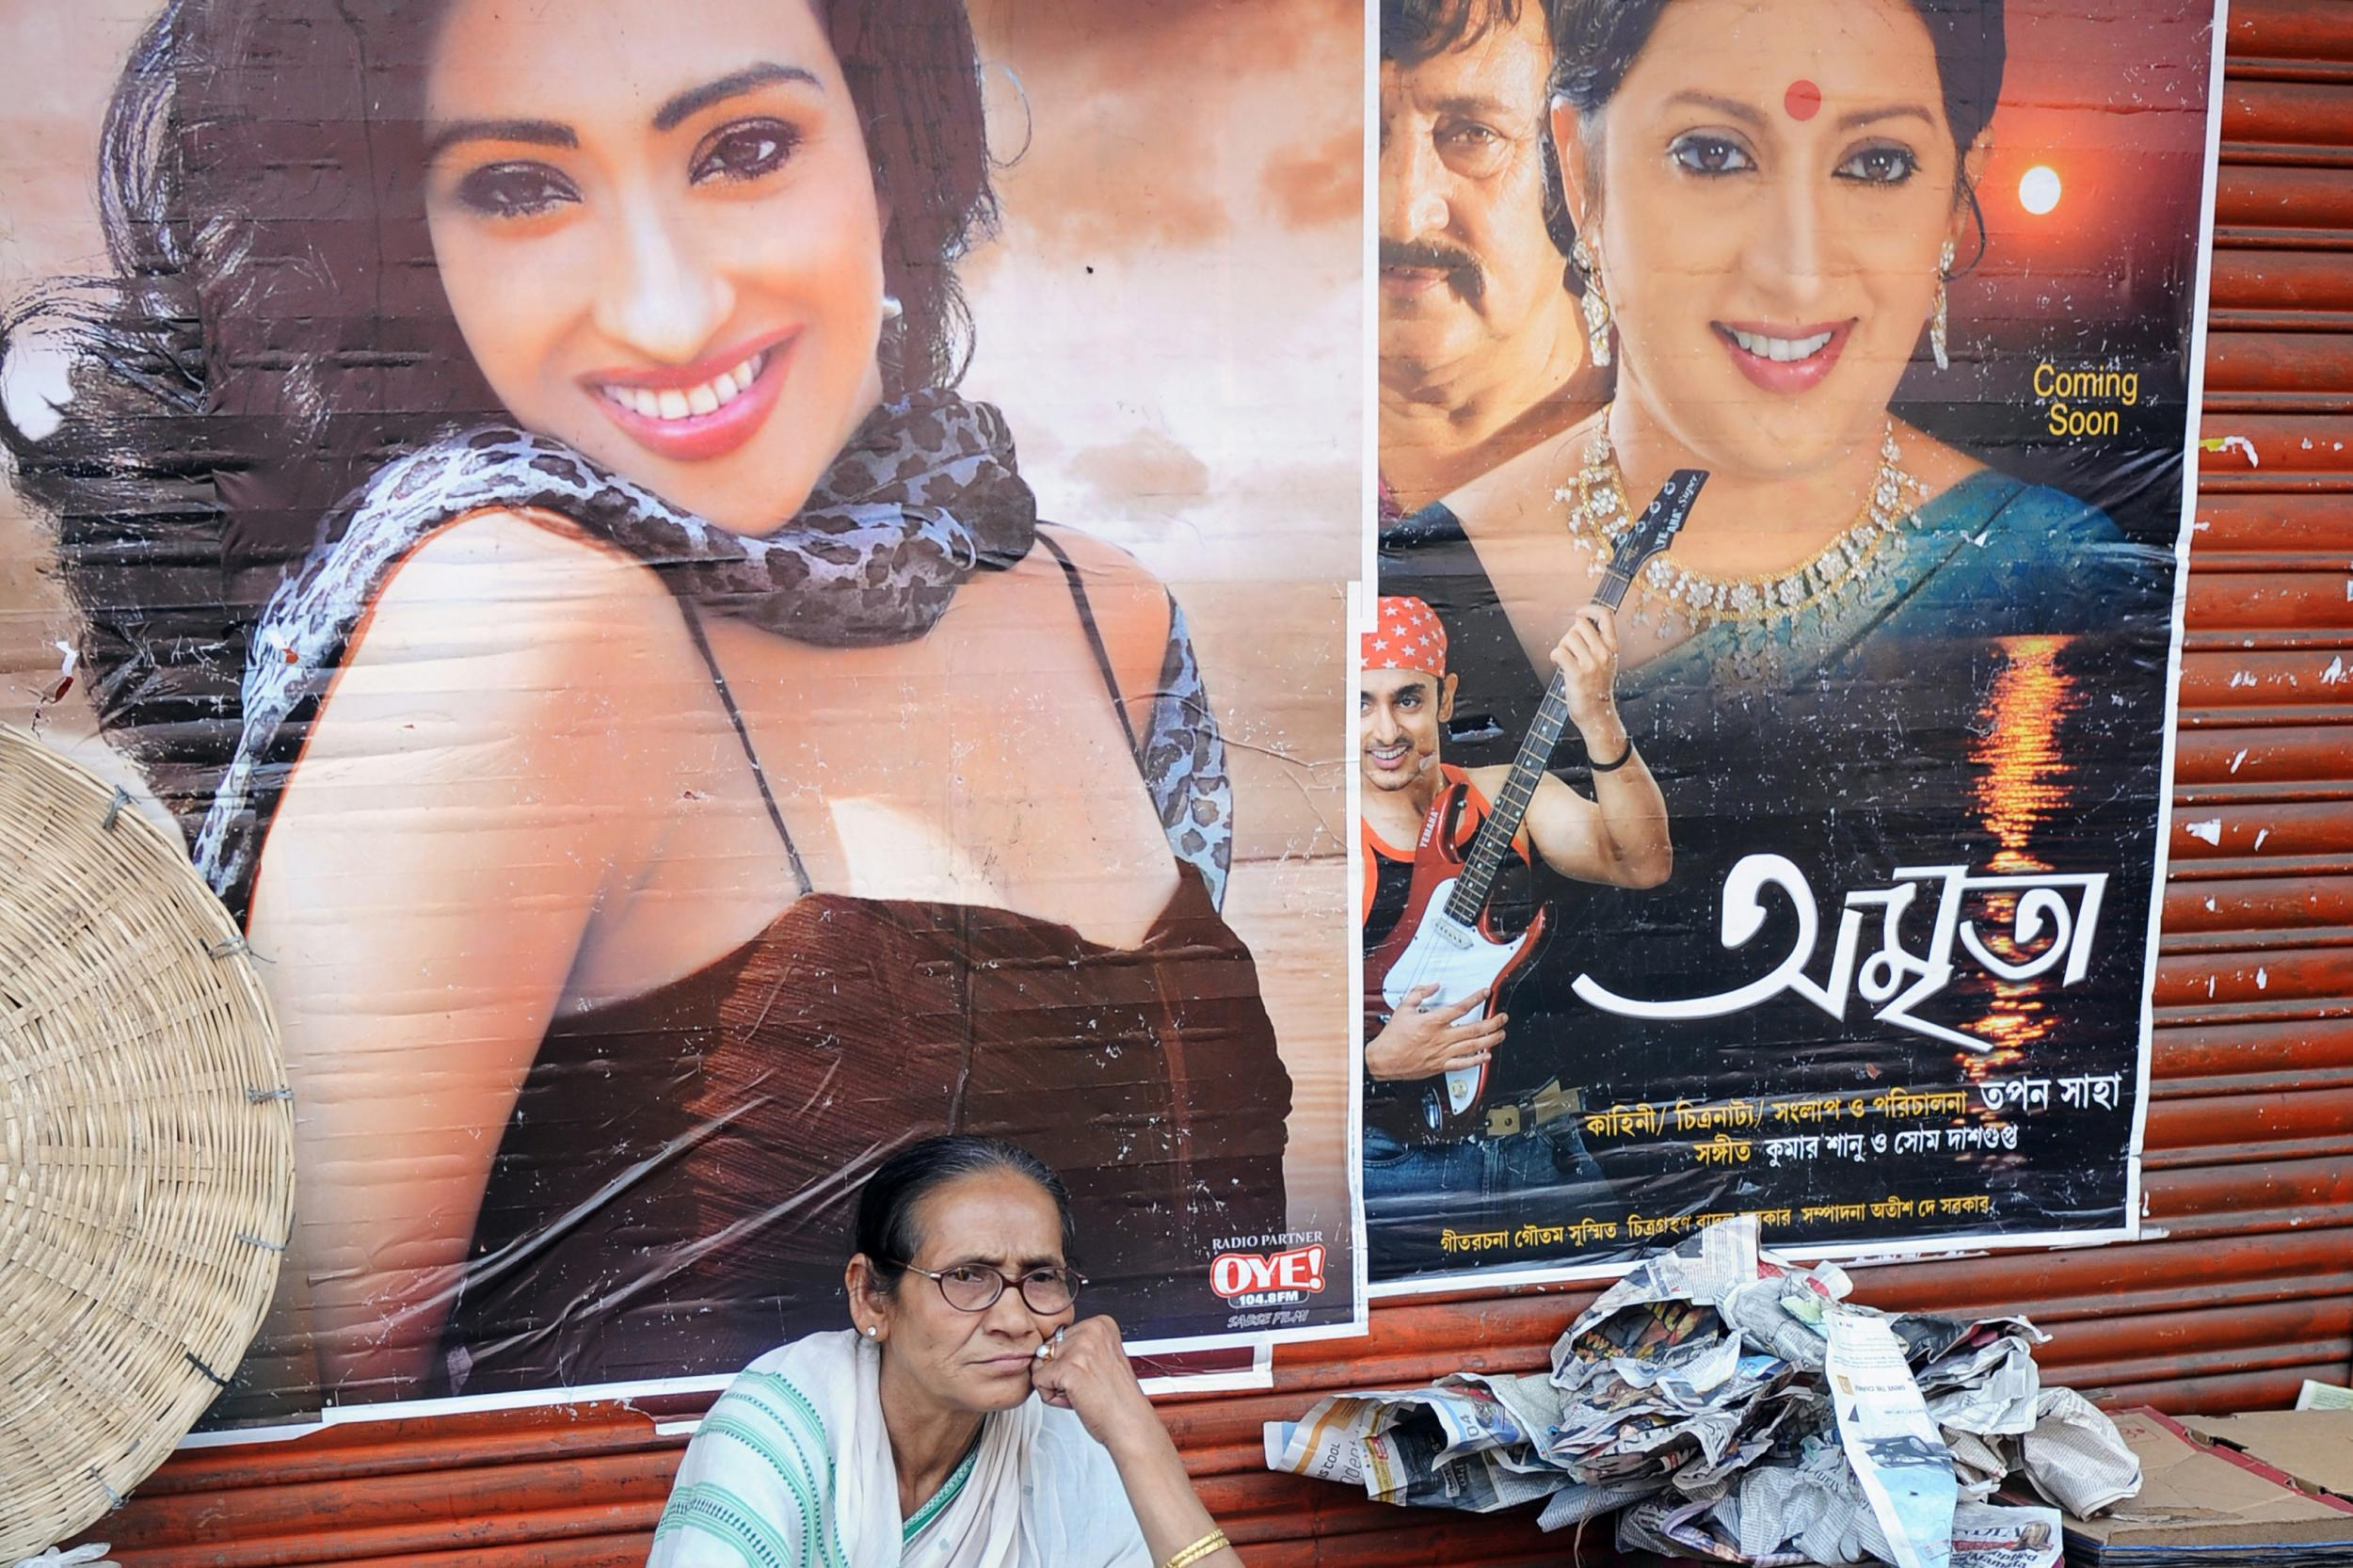 US prostitution ring case shines light on sexual exploitation in southern India's film industry